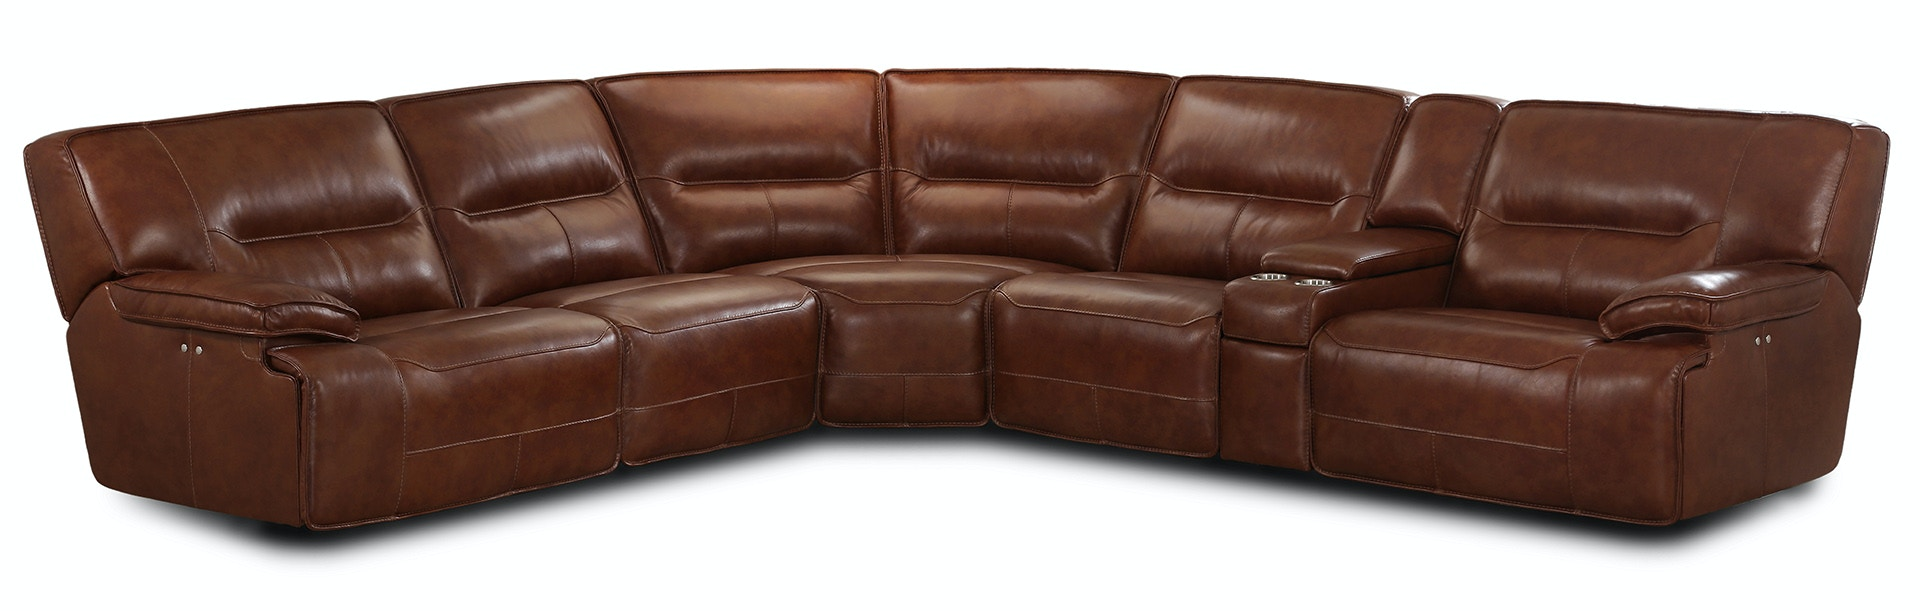 Simon Li Simon Li Sectional Including Power Sofa Power Glider Loveseat and Wedge UM045340  sc 1 st  Howell Furniture & Simon Li Furniture - Howell Furniture - Beaumont and Nederland TX ... islam-shia.org